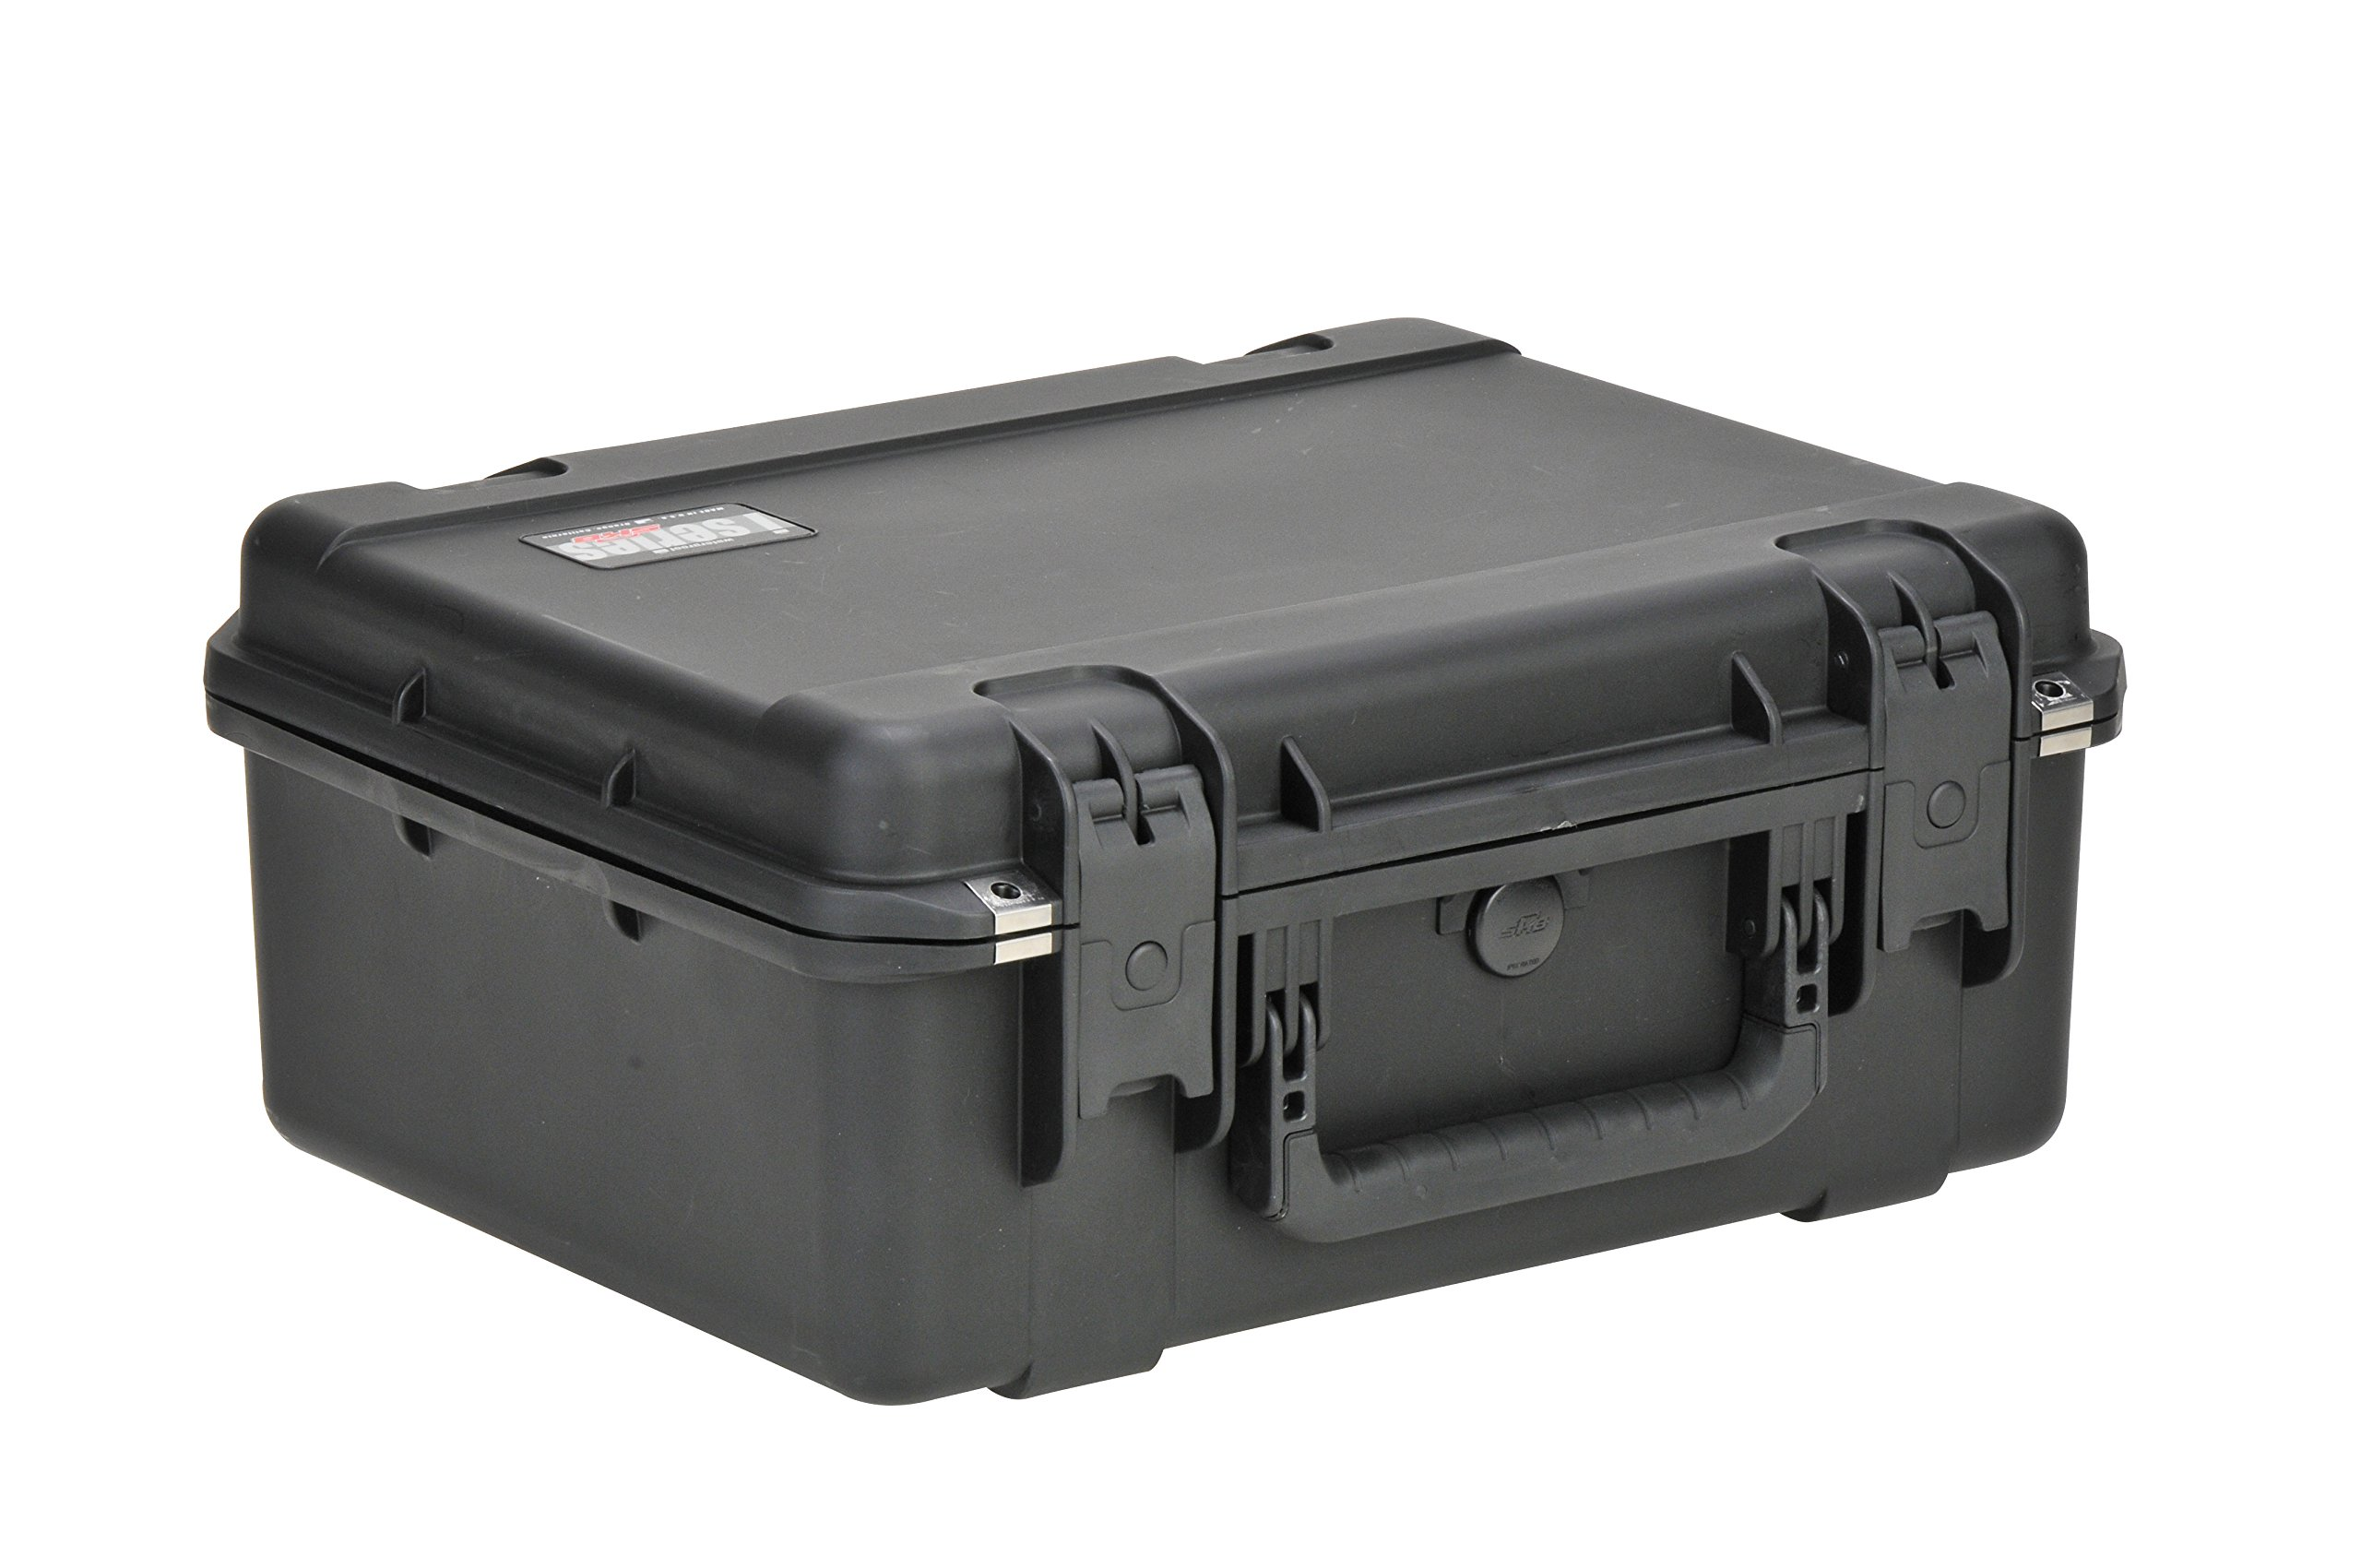 SKB Injection Molded Water-tight Case 19 x 14 ¼ x 8 Inches with Gray Dividers (3I-1914N-8B-D)